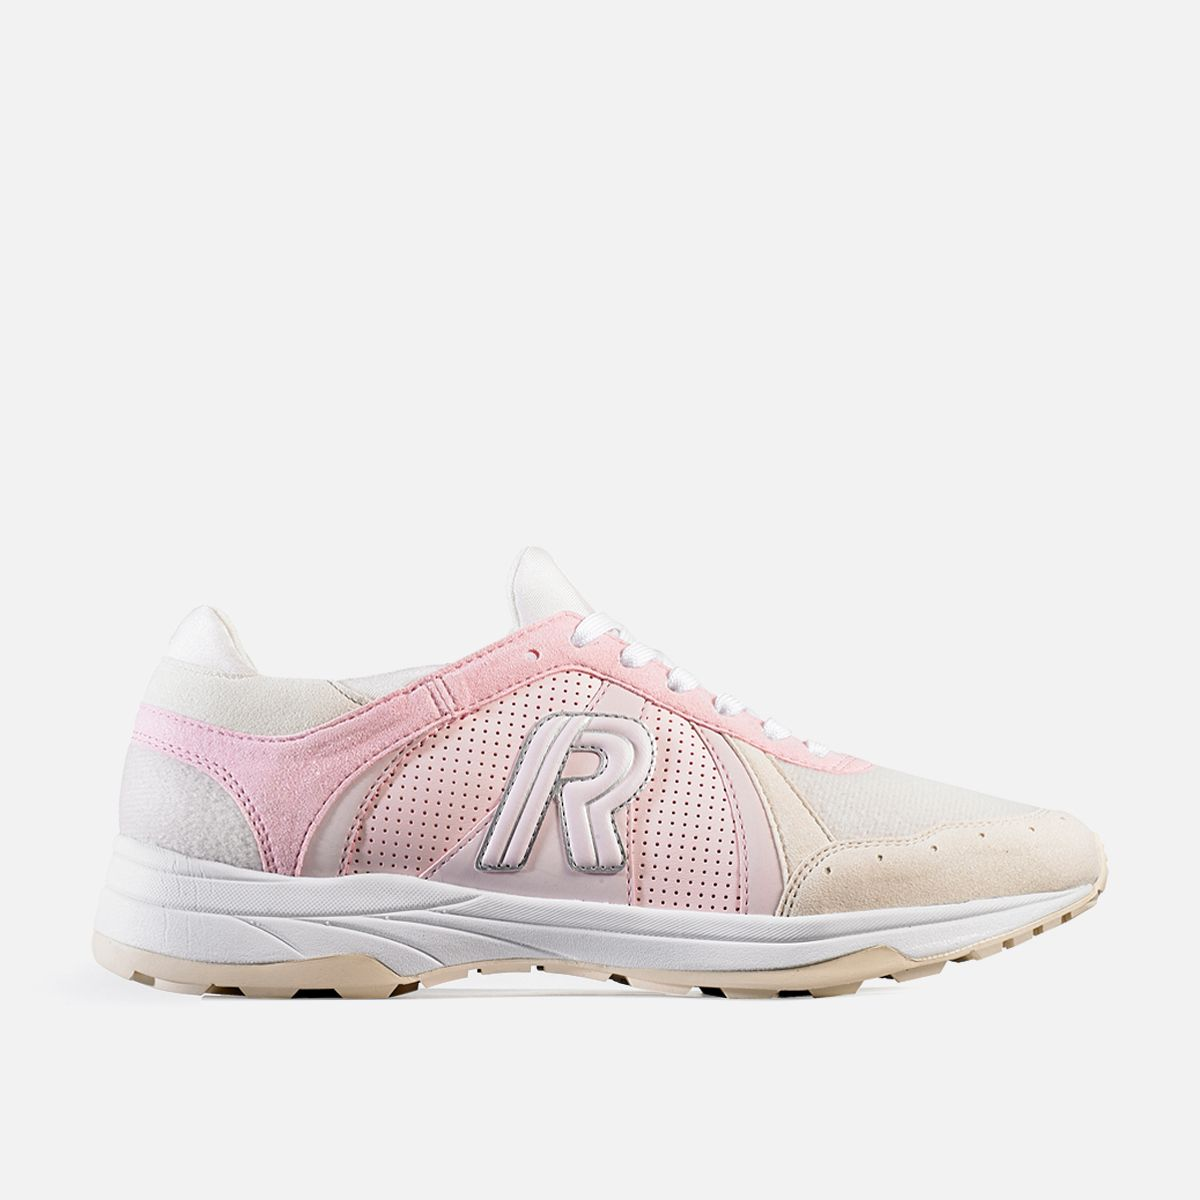 reebok shoes used in she was pretty kdrama casts